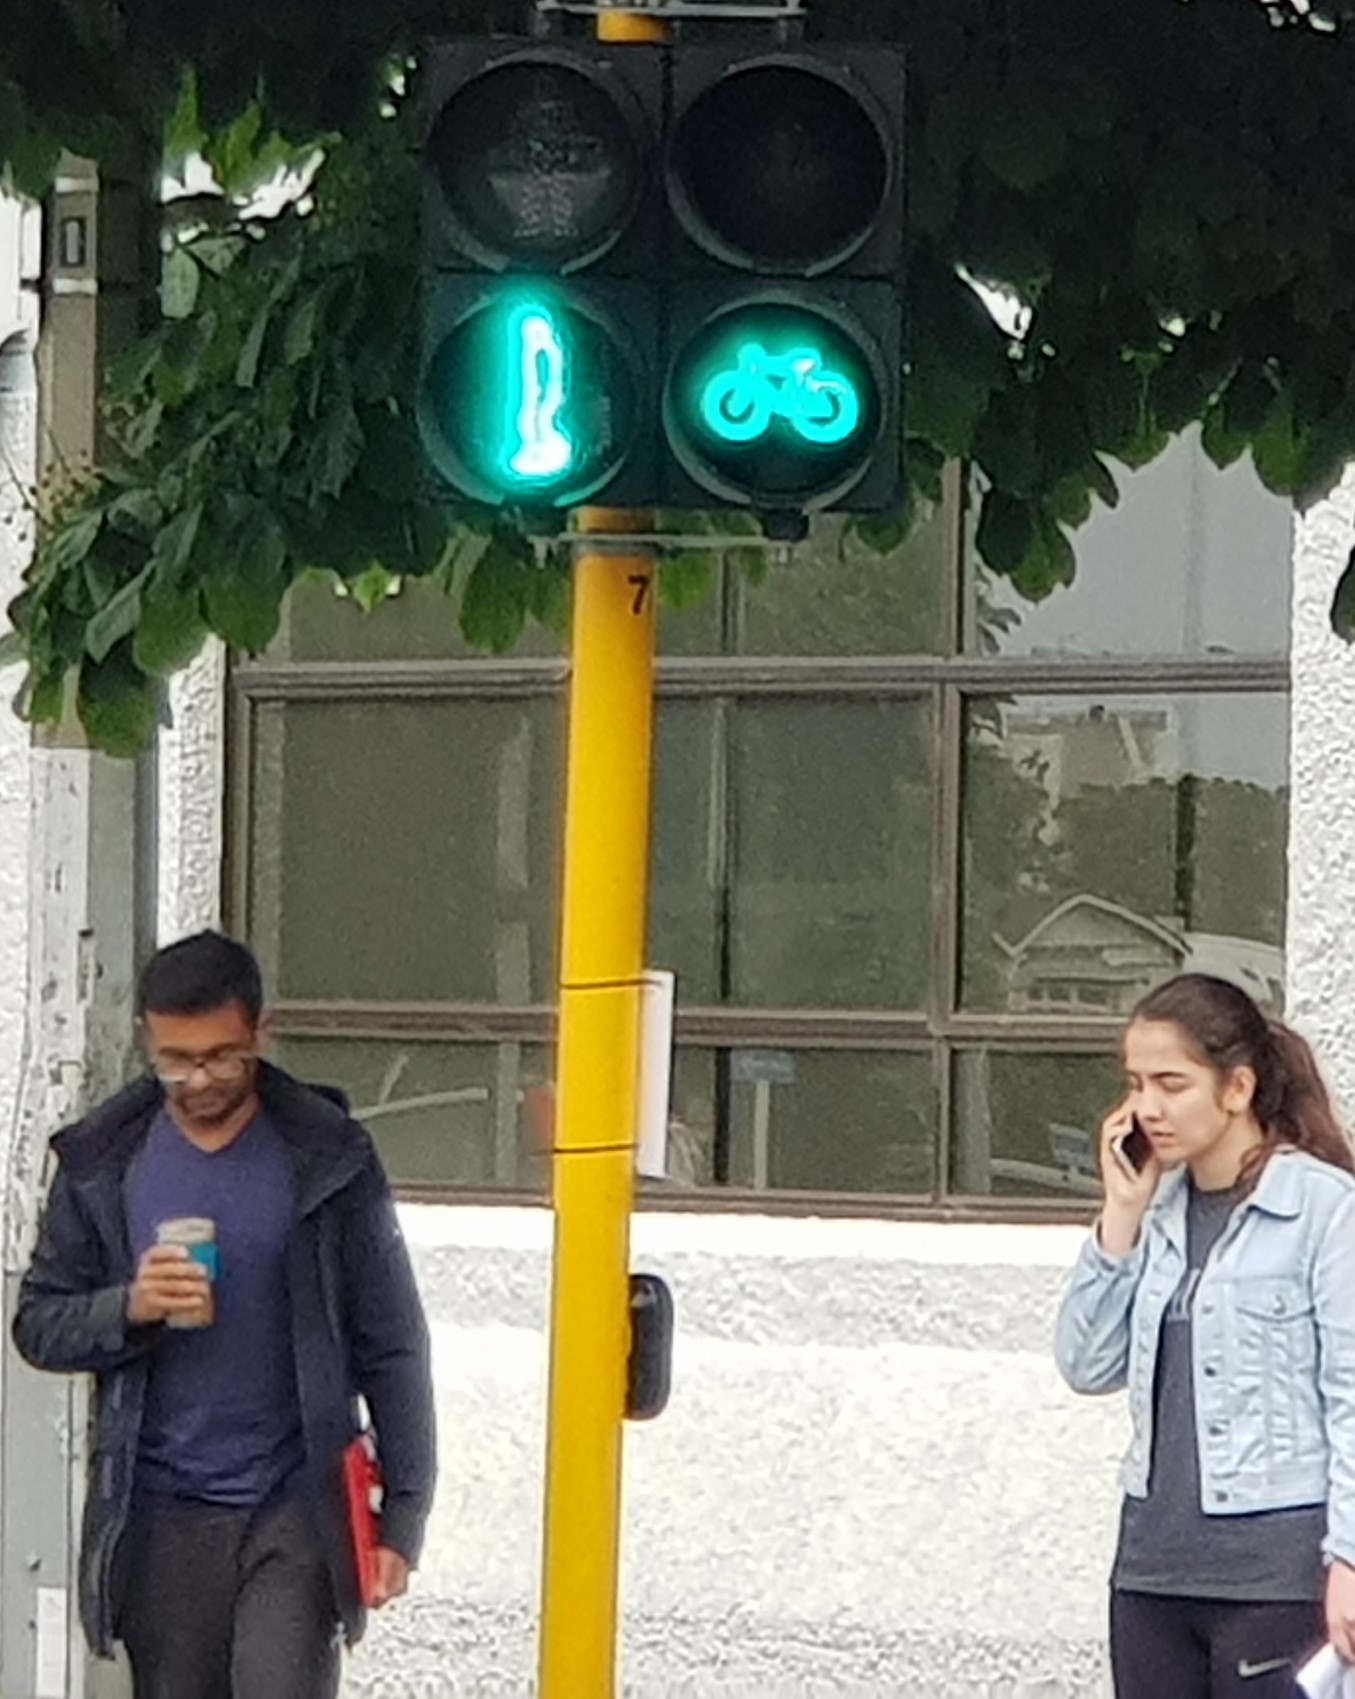 Close-up of 2-aspect cycle signals